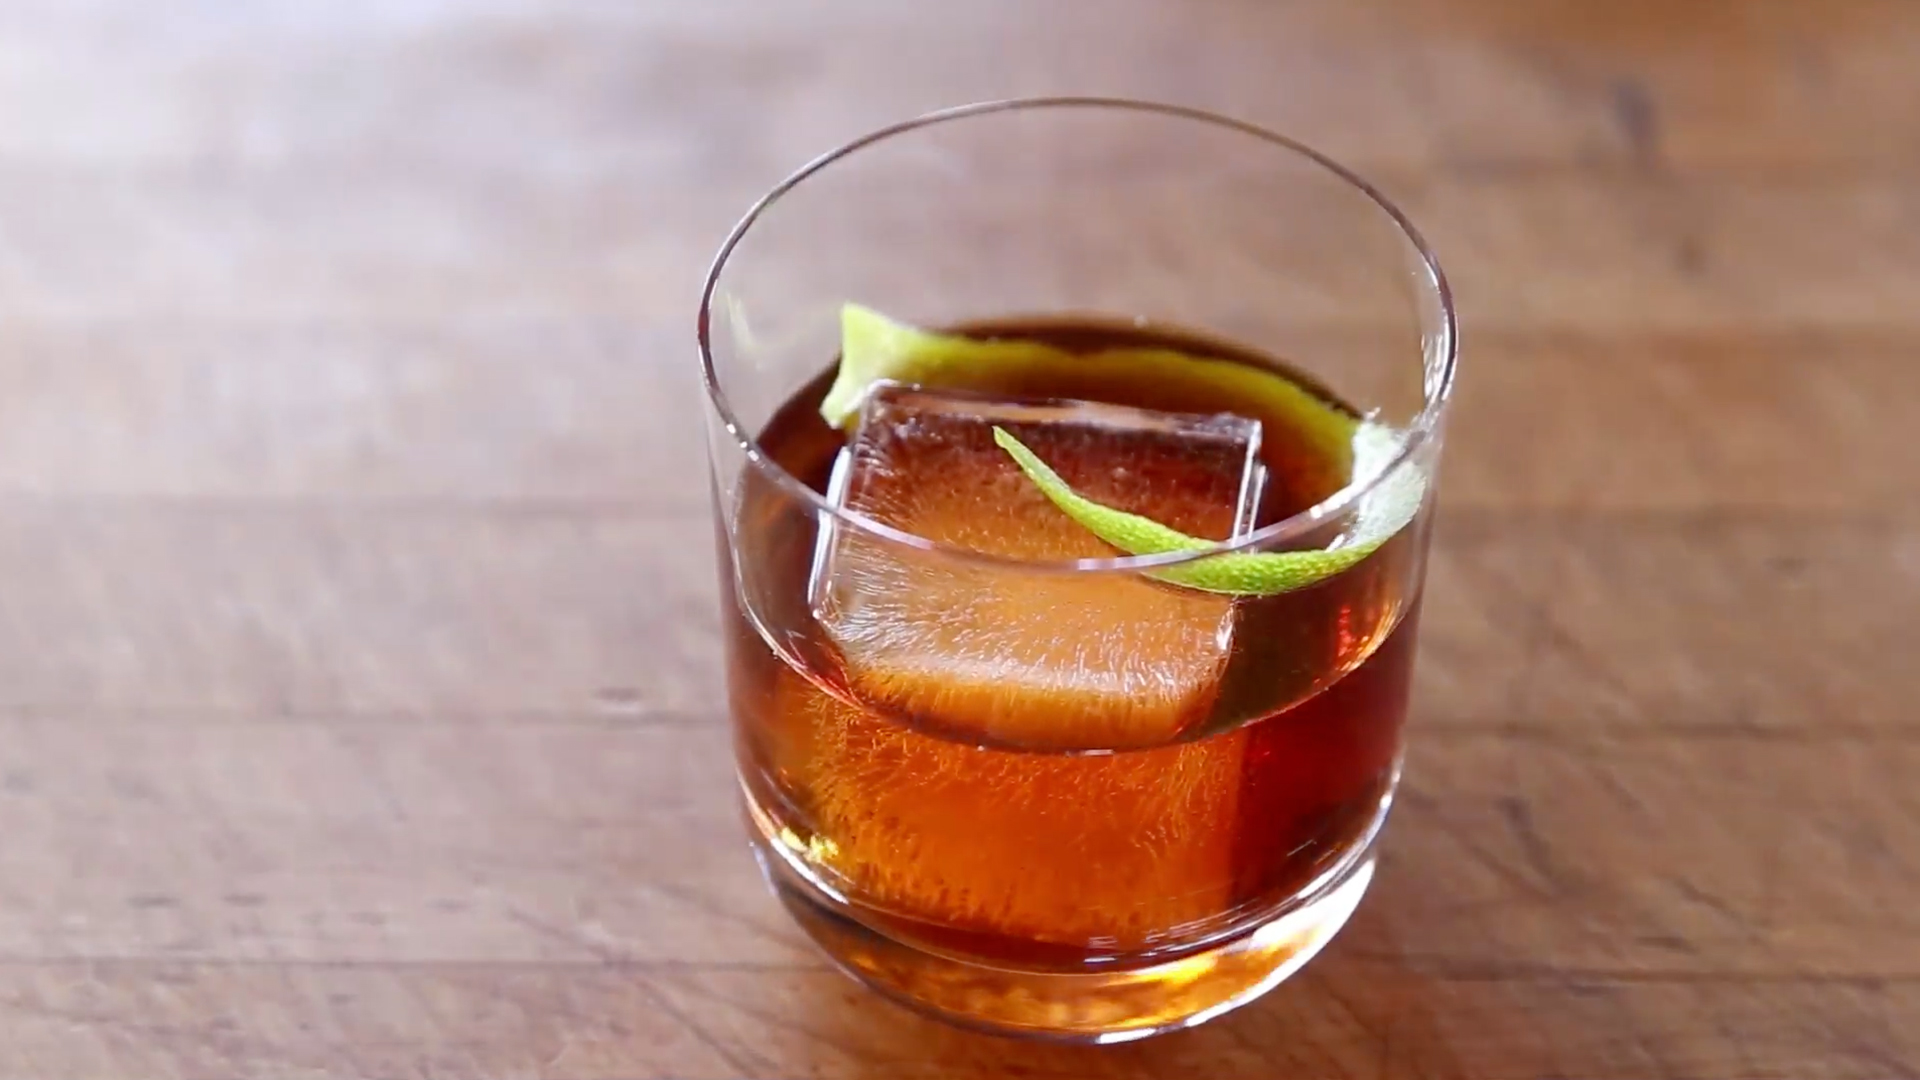 Video: How to Make an Amazing Amaro Cocktail